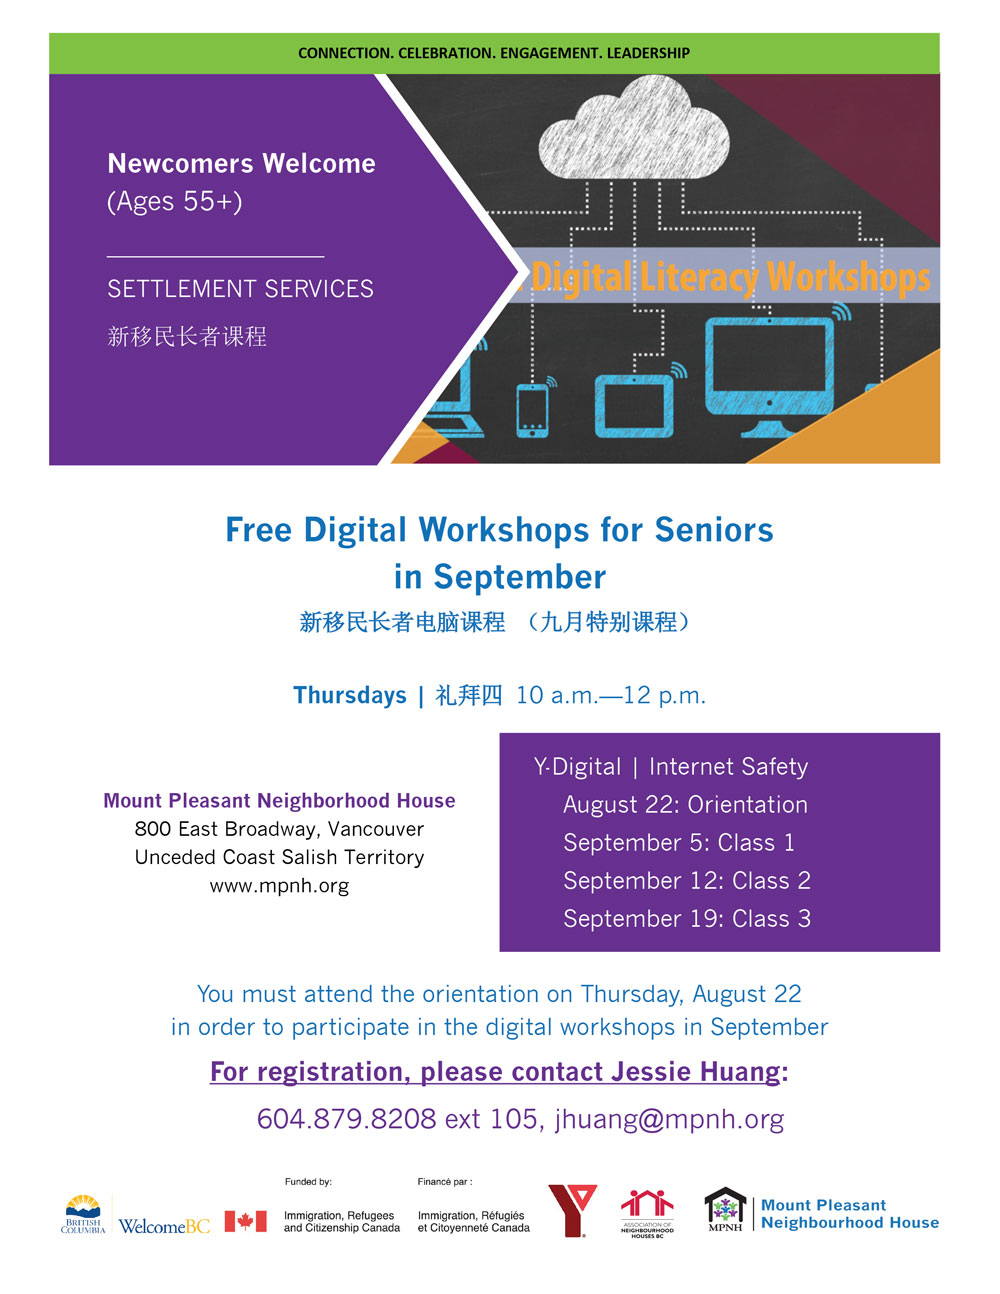 An image of the poster with program details, featuring a graphic with a desktop computer, a tablet, a cell phone, and a digital cloud.